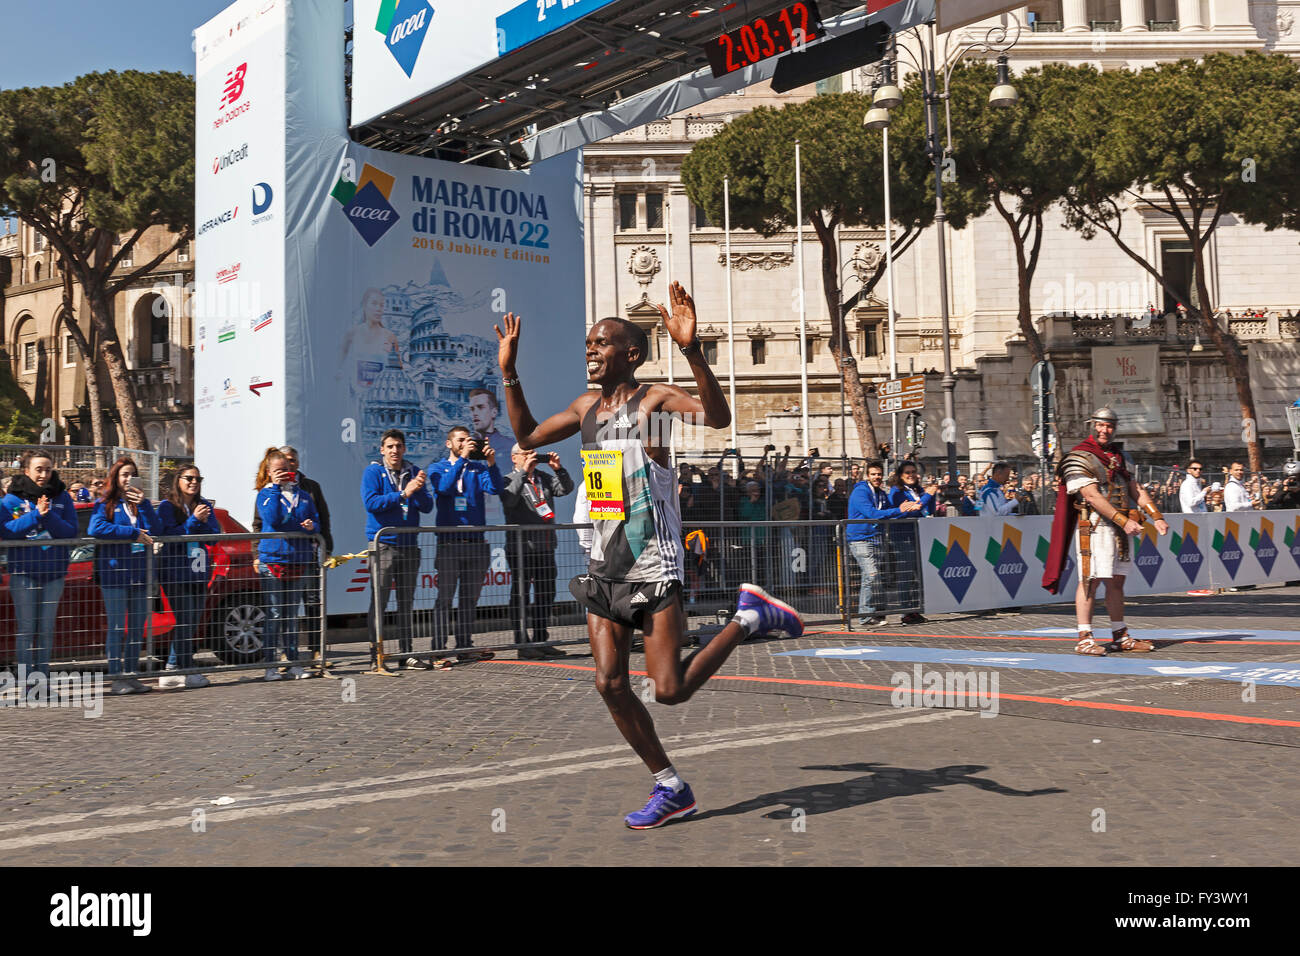 Rome, Italy - April 10, 2016: Amos Kipruto crosses the finish line in first place and won the men's race of - Stock Image